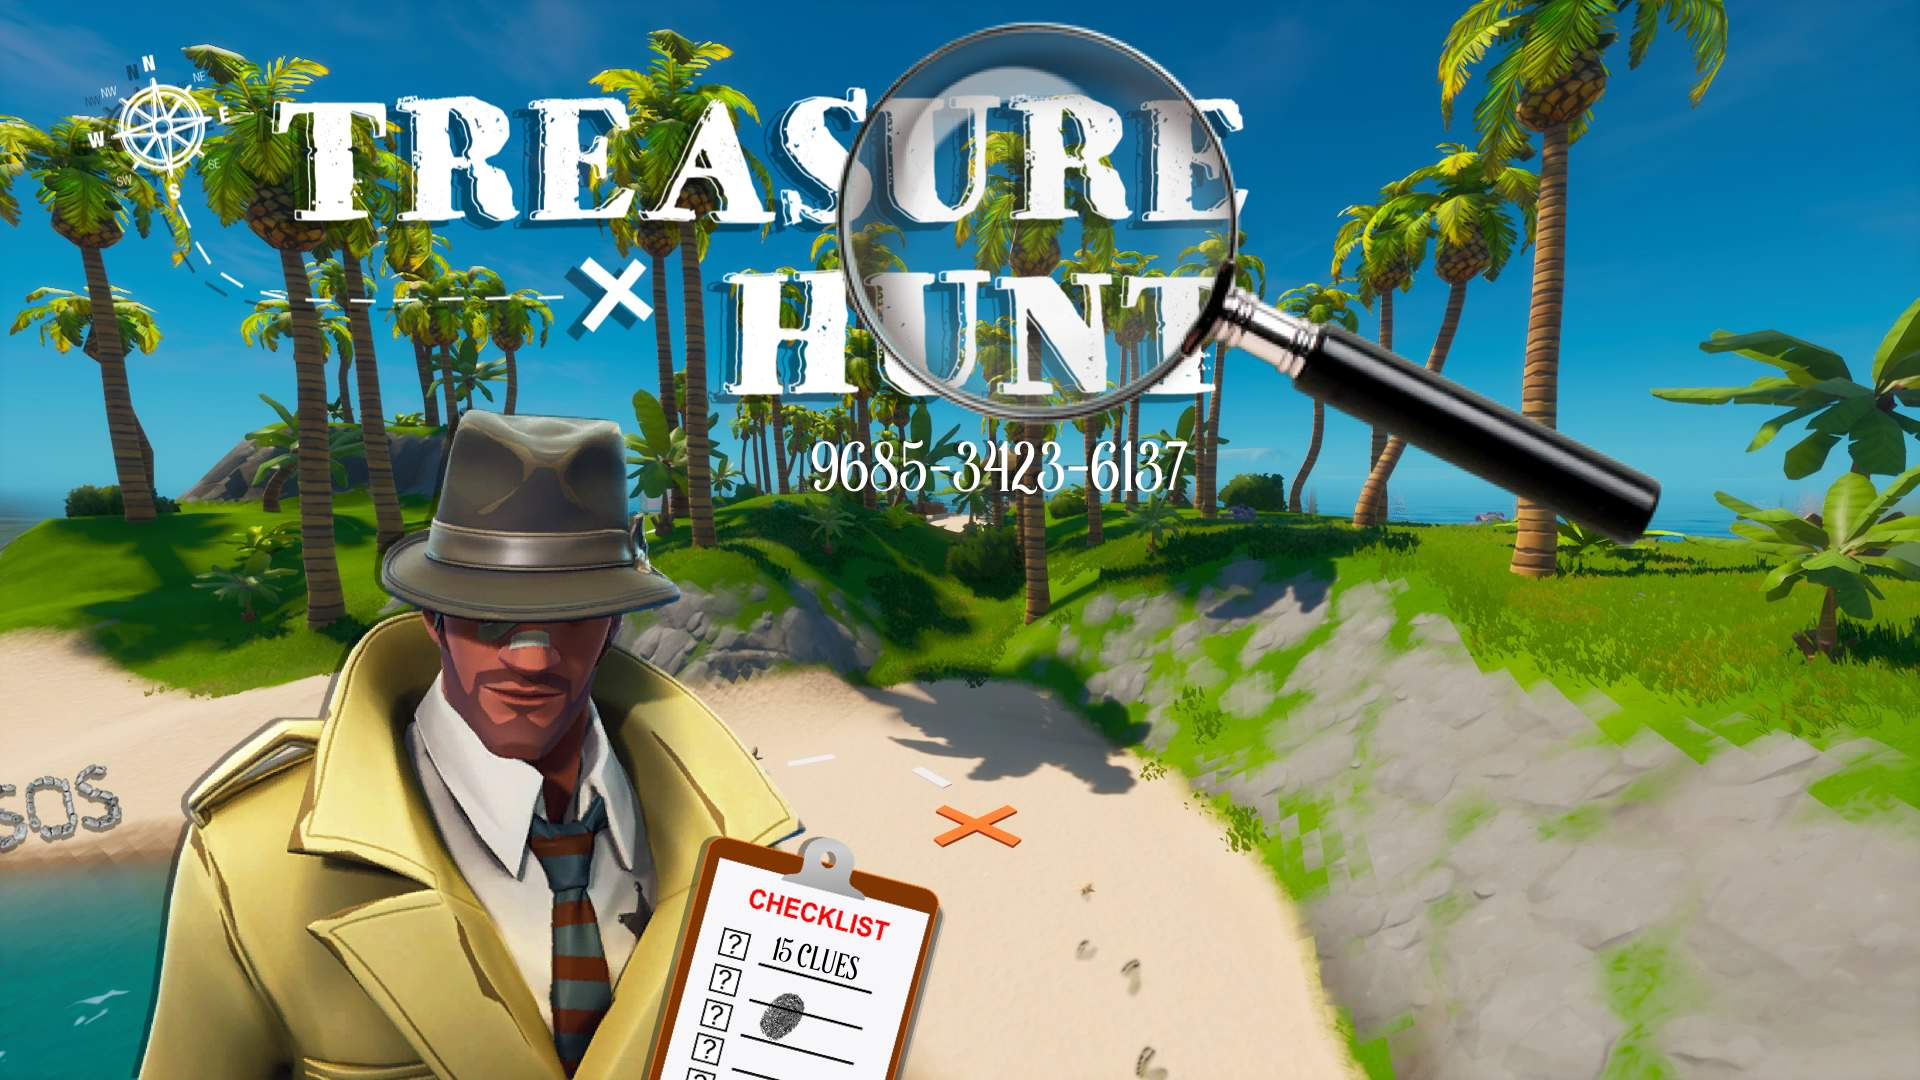 TREASURE HUNT ISLAND